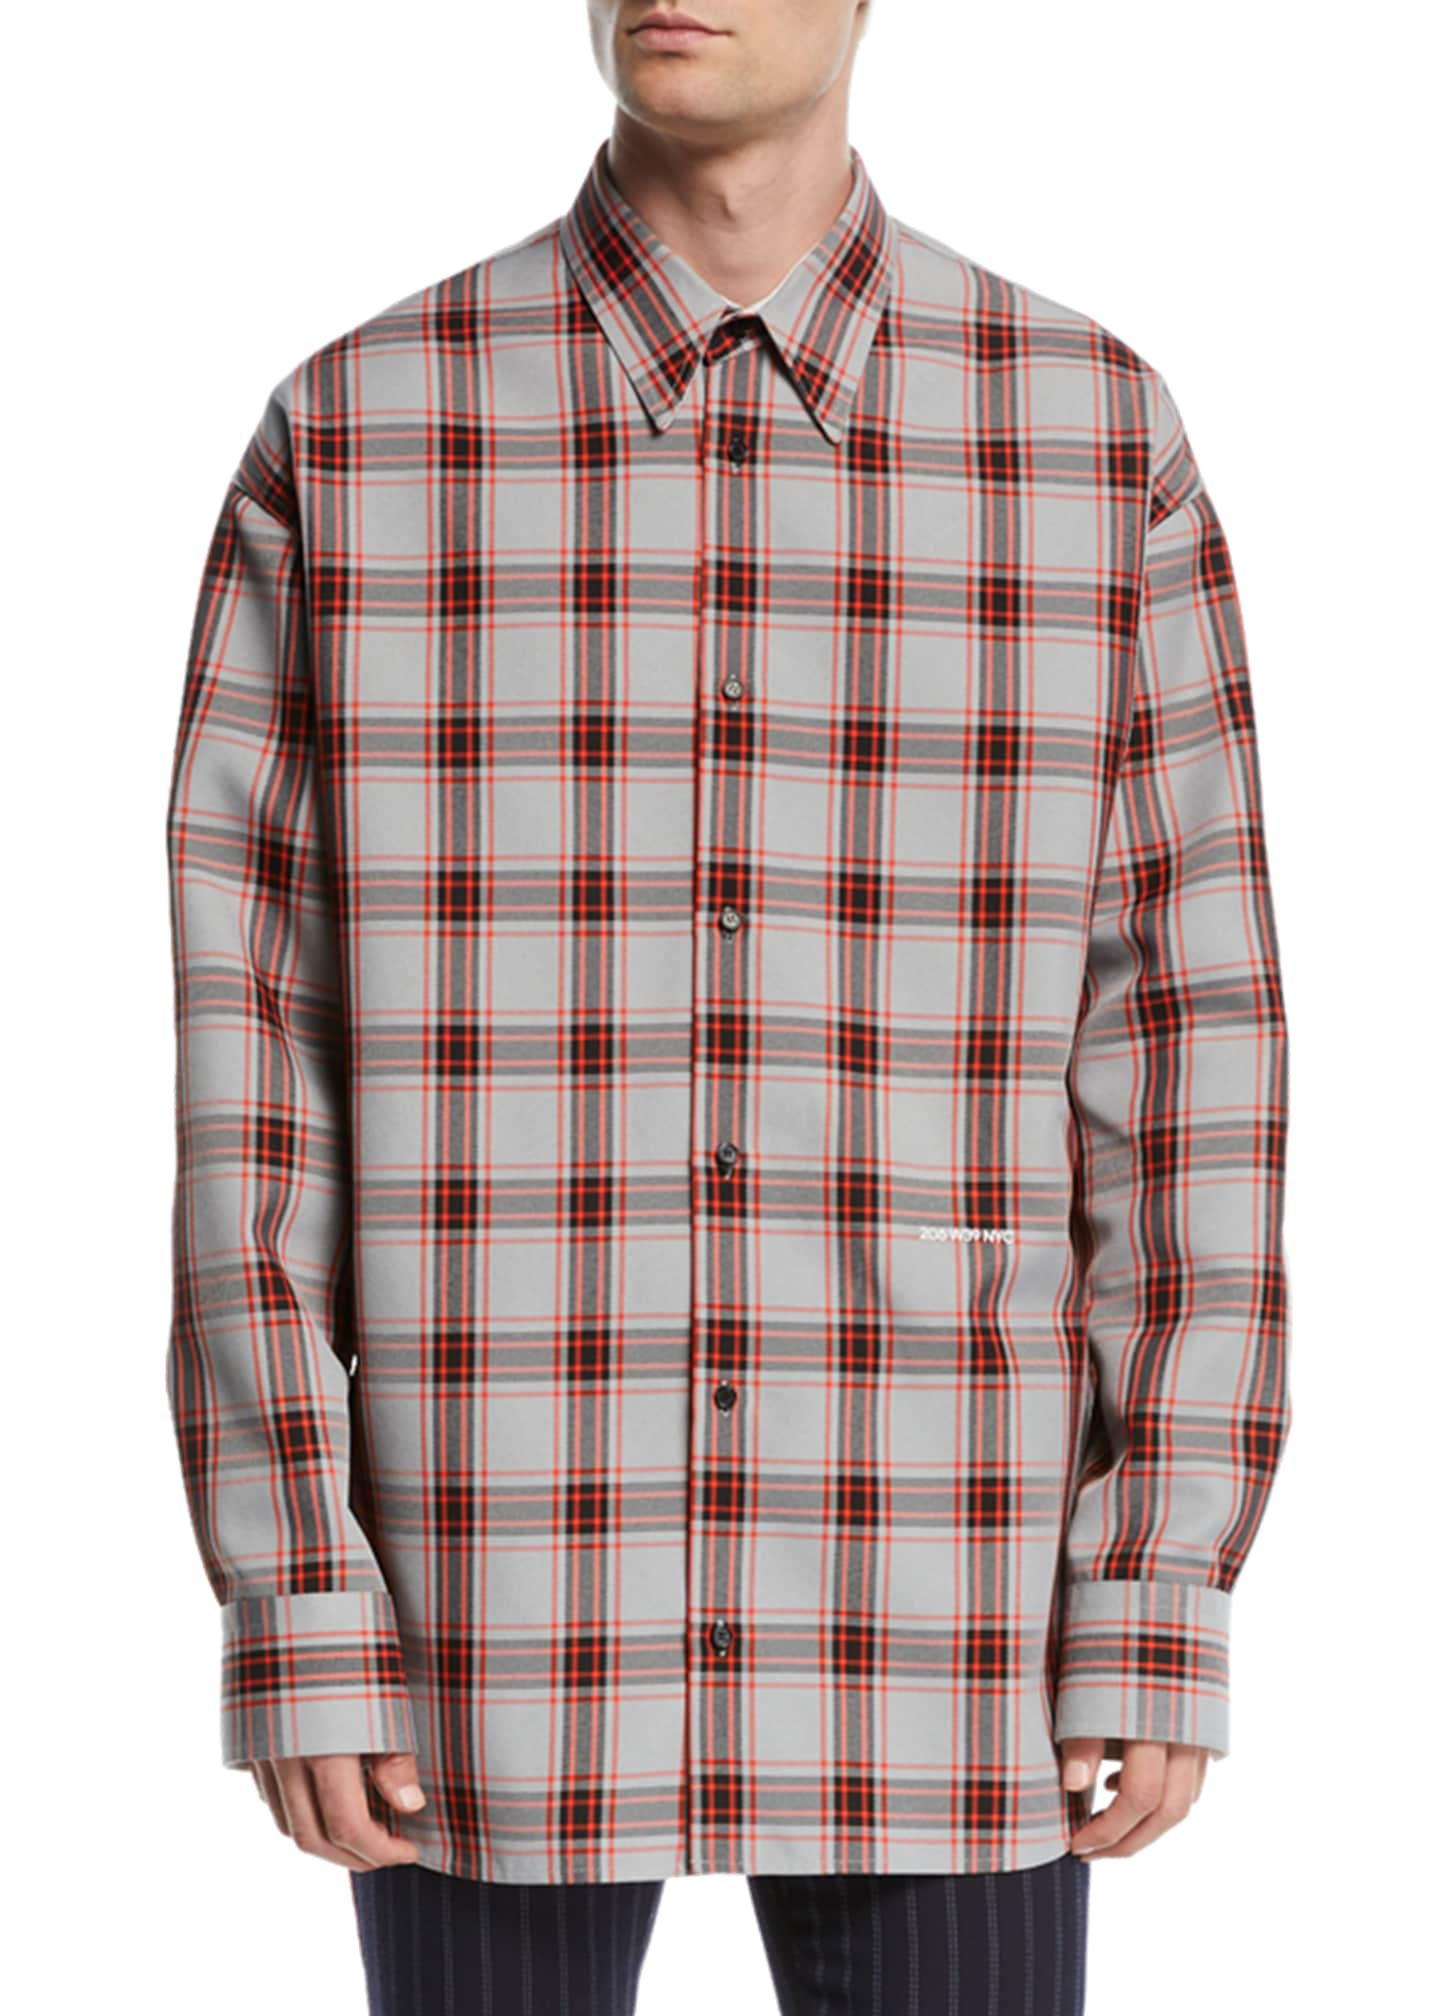 CALVIN KLEIN 205W39NYC Men's Tartan Check Sport Shirt